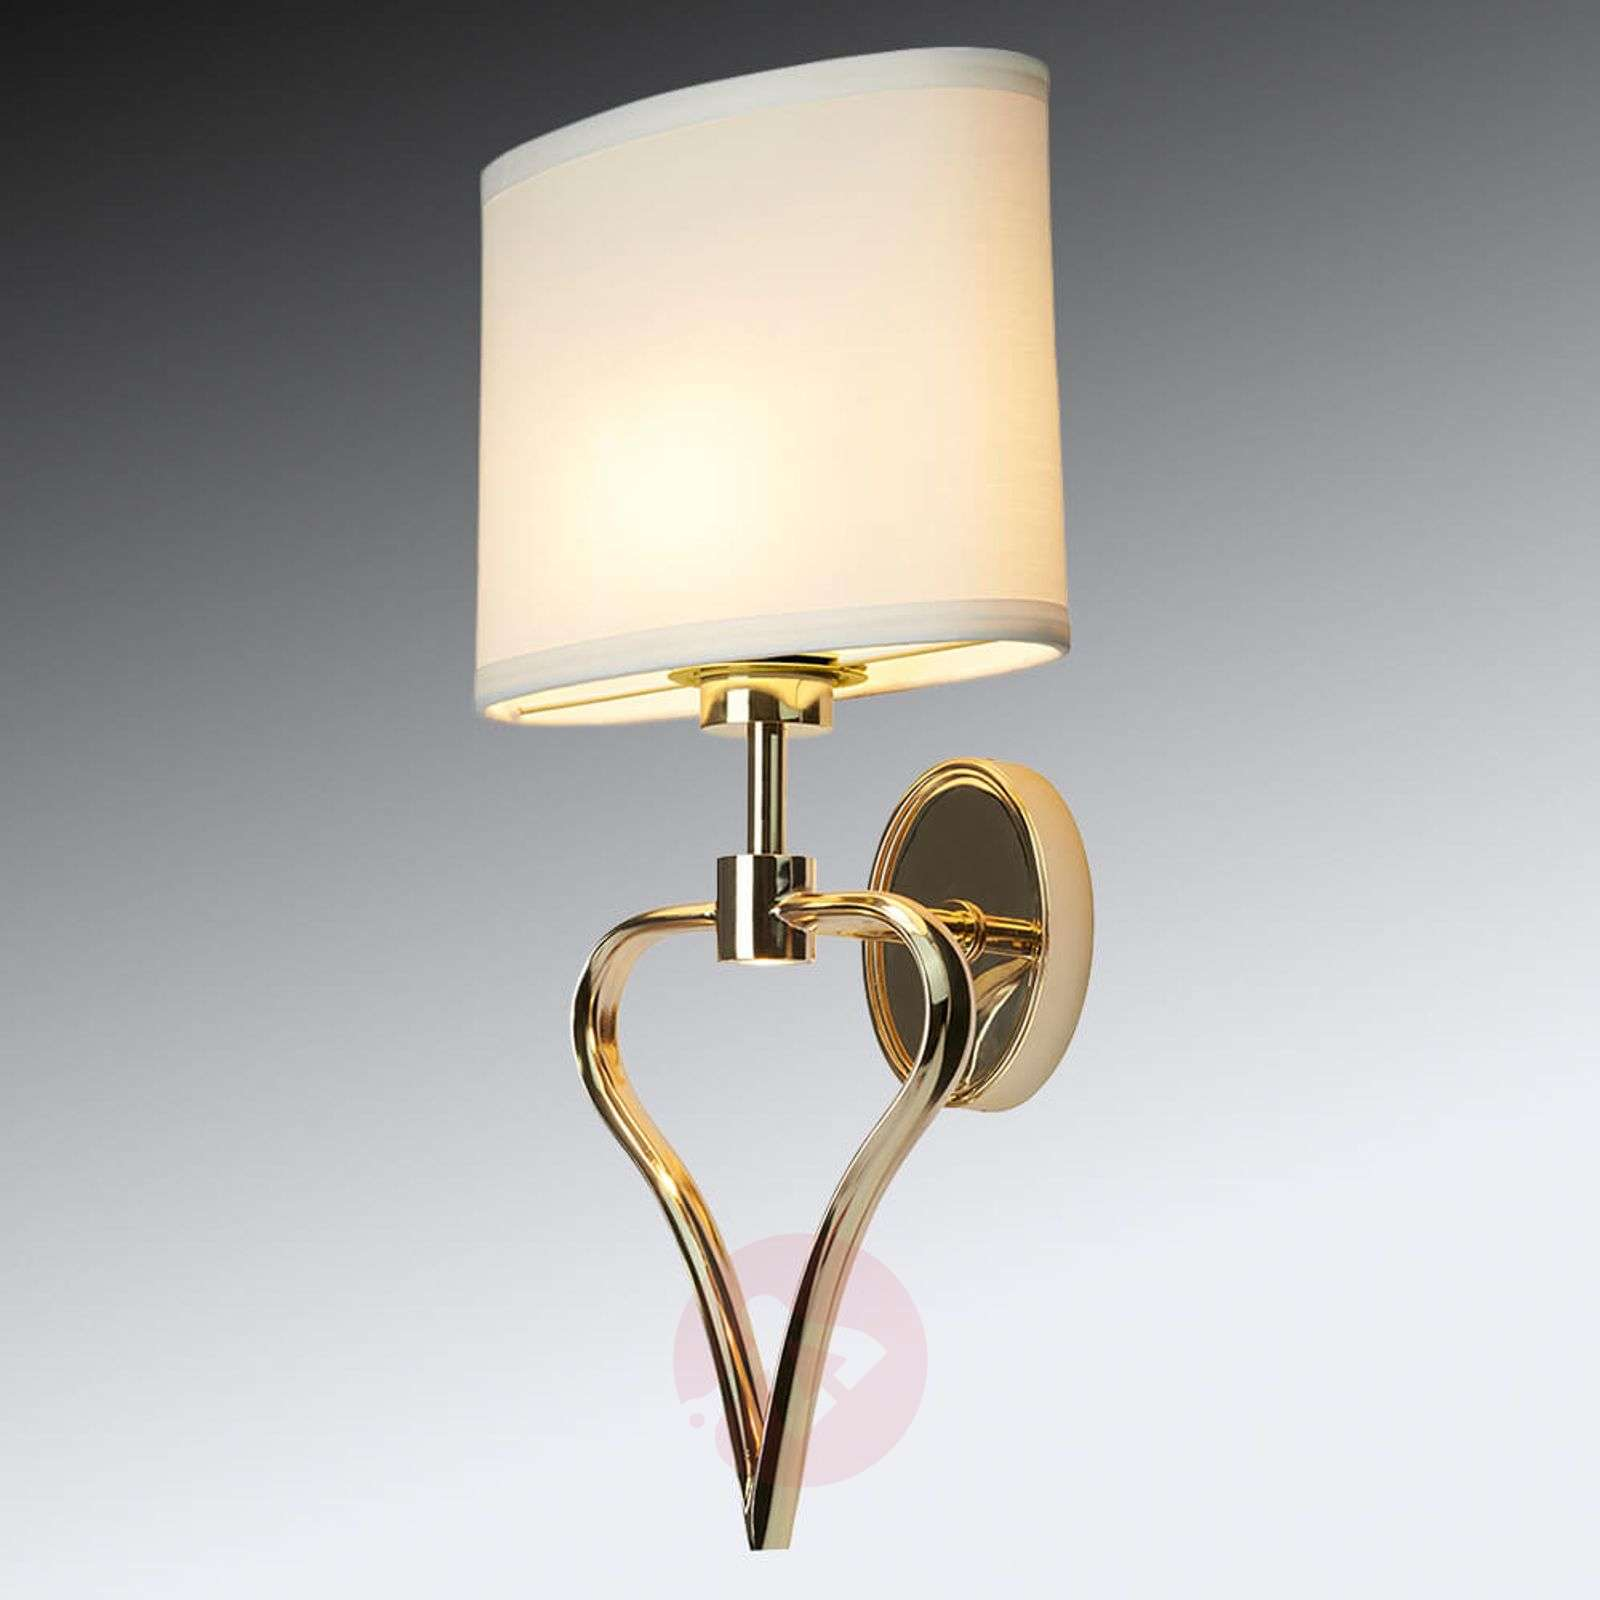 Charming LED wall light Falmouth-3048740-01